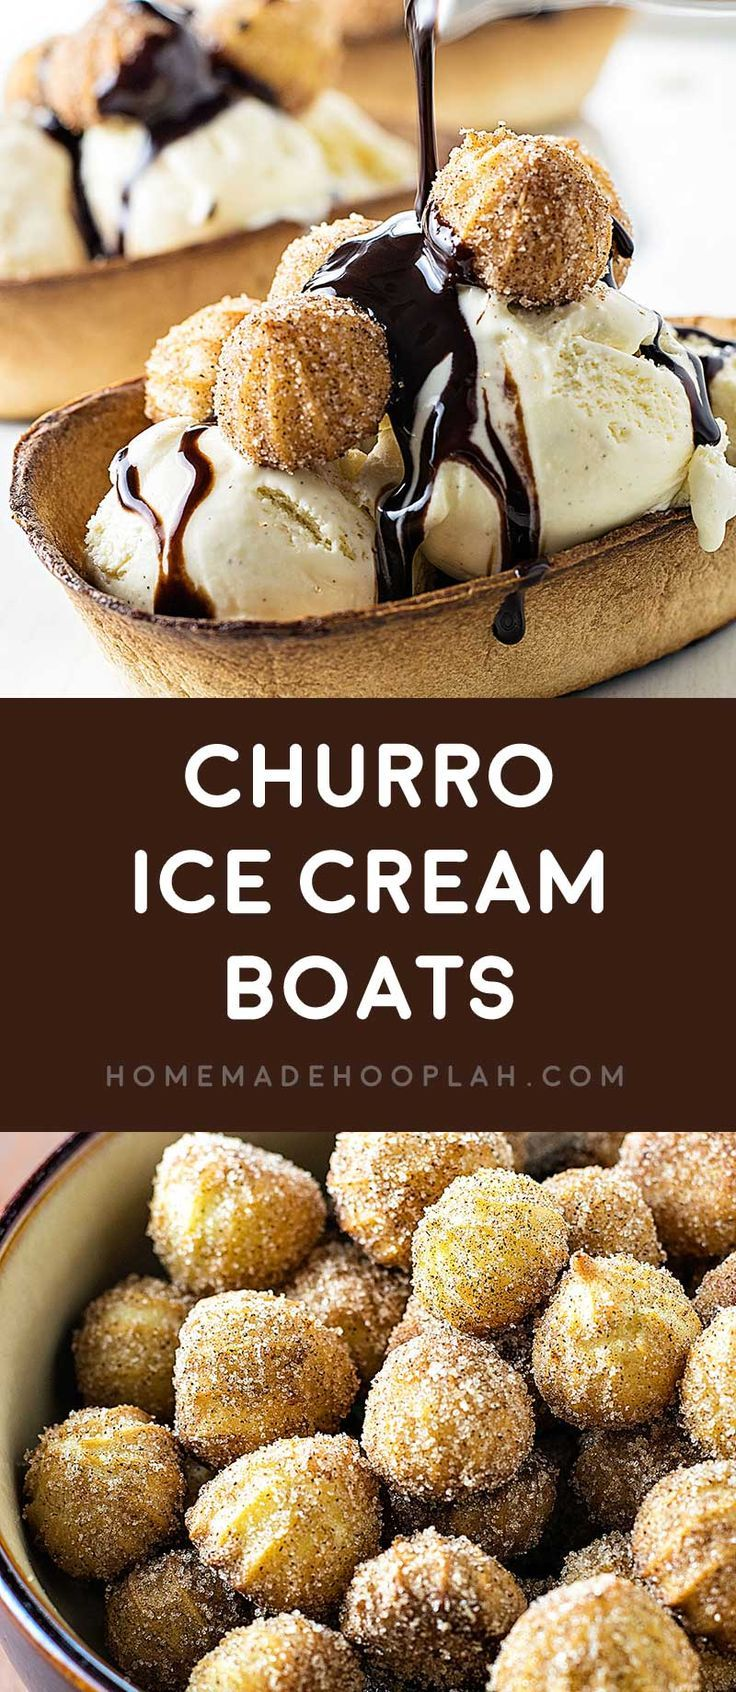 Churro Ice Cream Boats Sweeten Up Your Next Party With Cinnamon Tortilla Boats Filled With